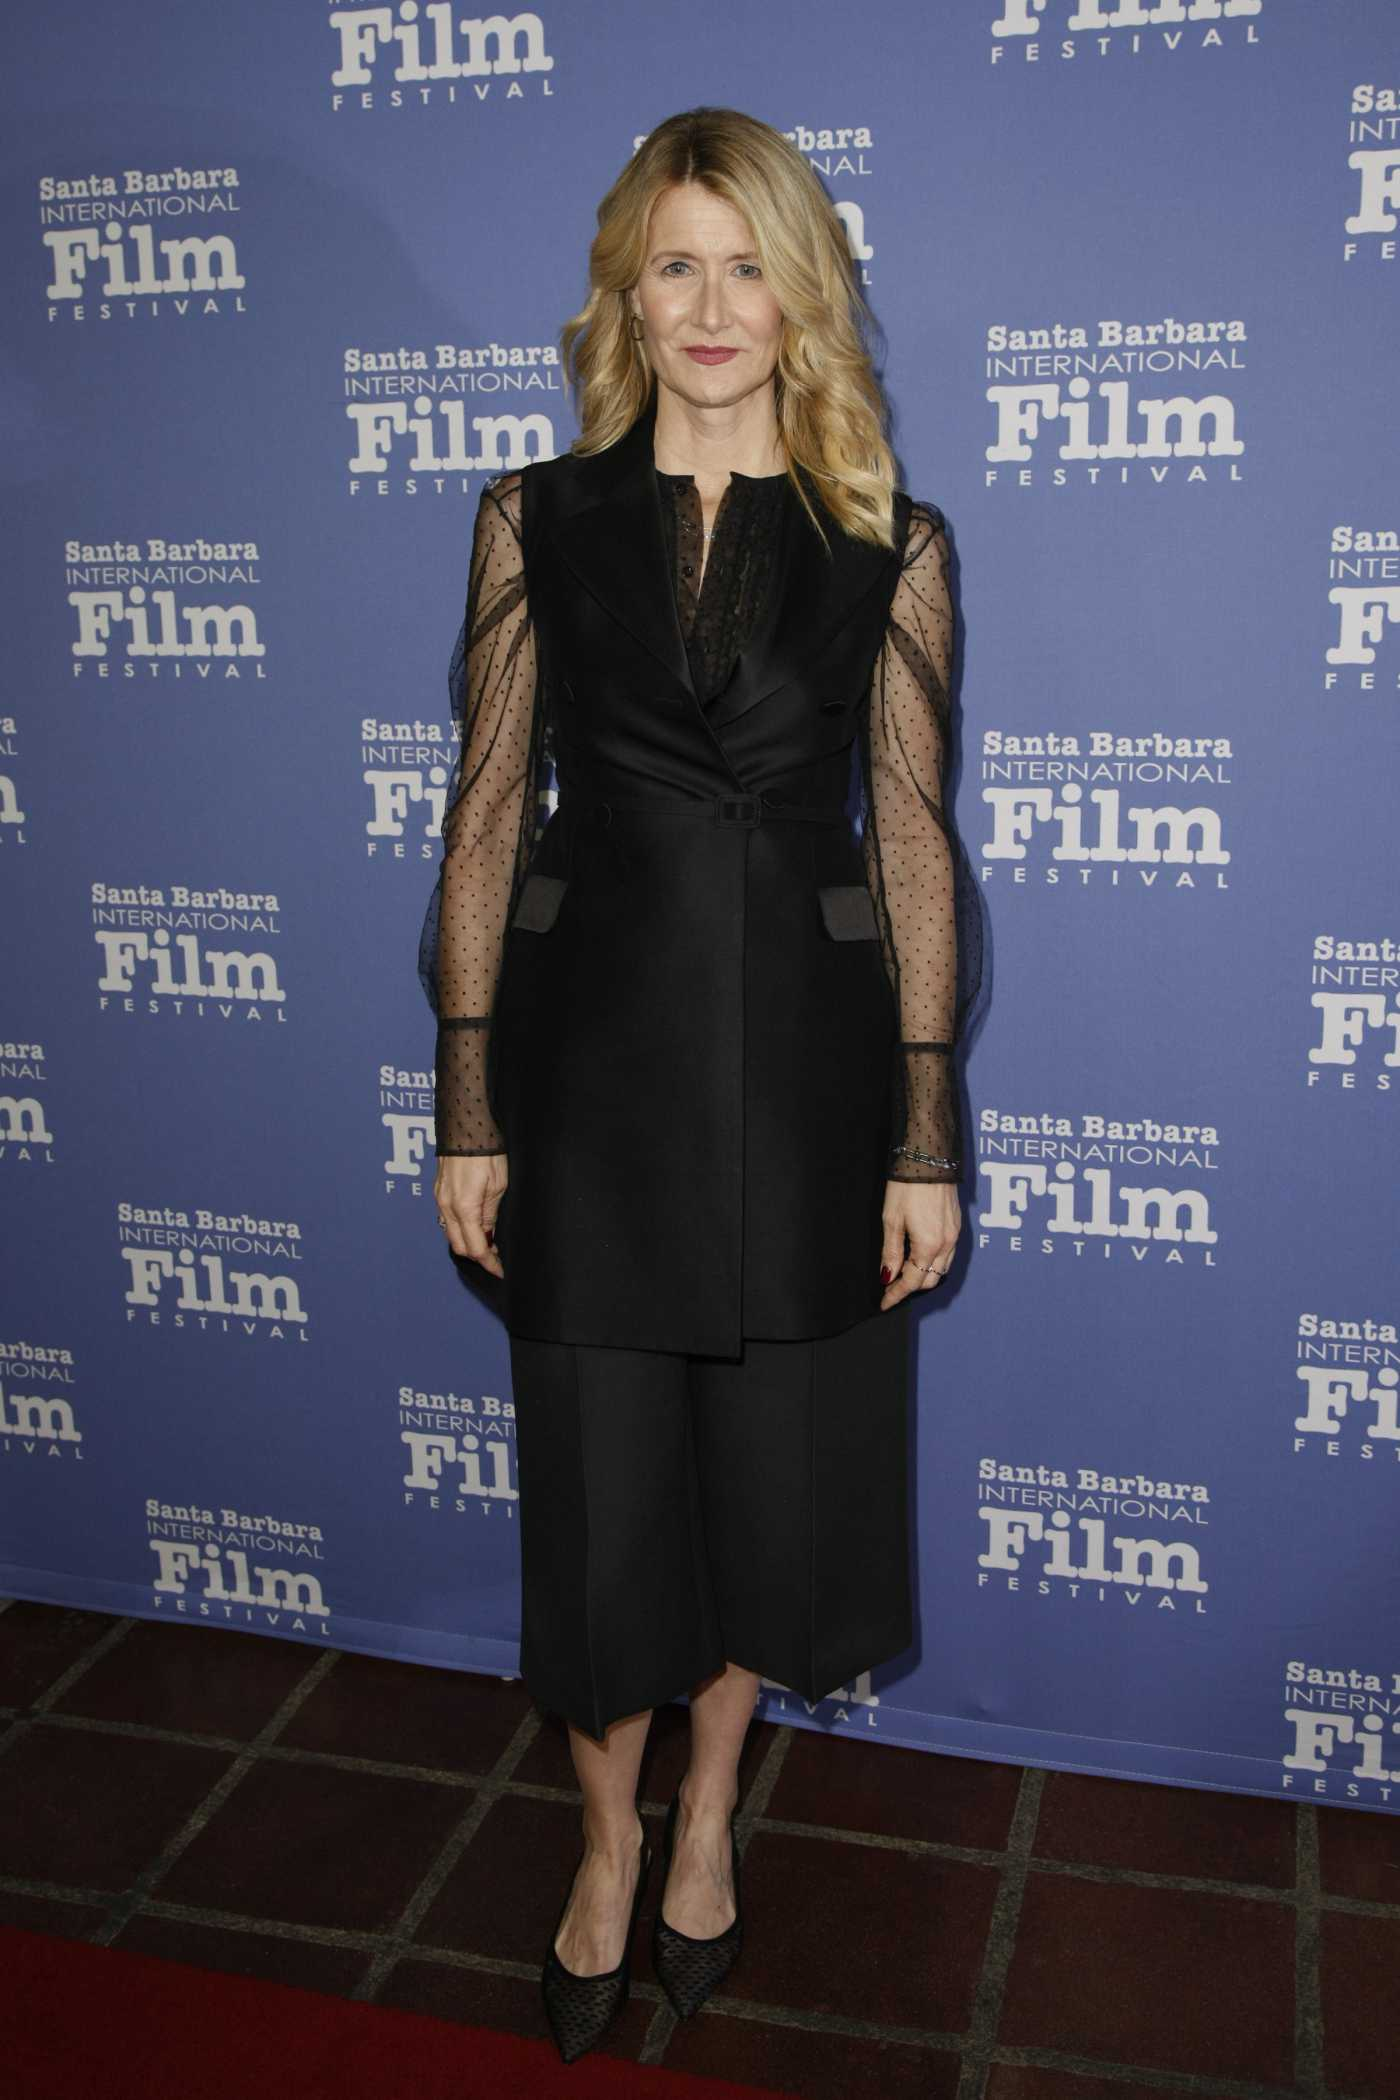 Laura Dern Attends the Cinema Vangaurd Award During the 35th Annual Santa Barbara International Film Festival in Santa Barbara 01/21/2020